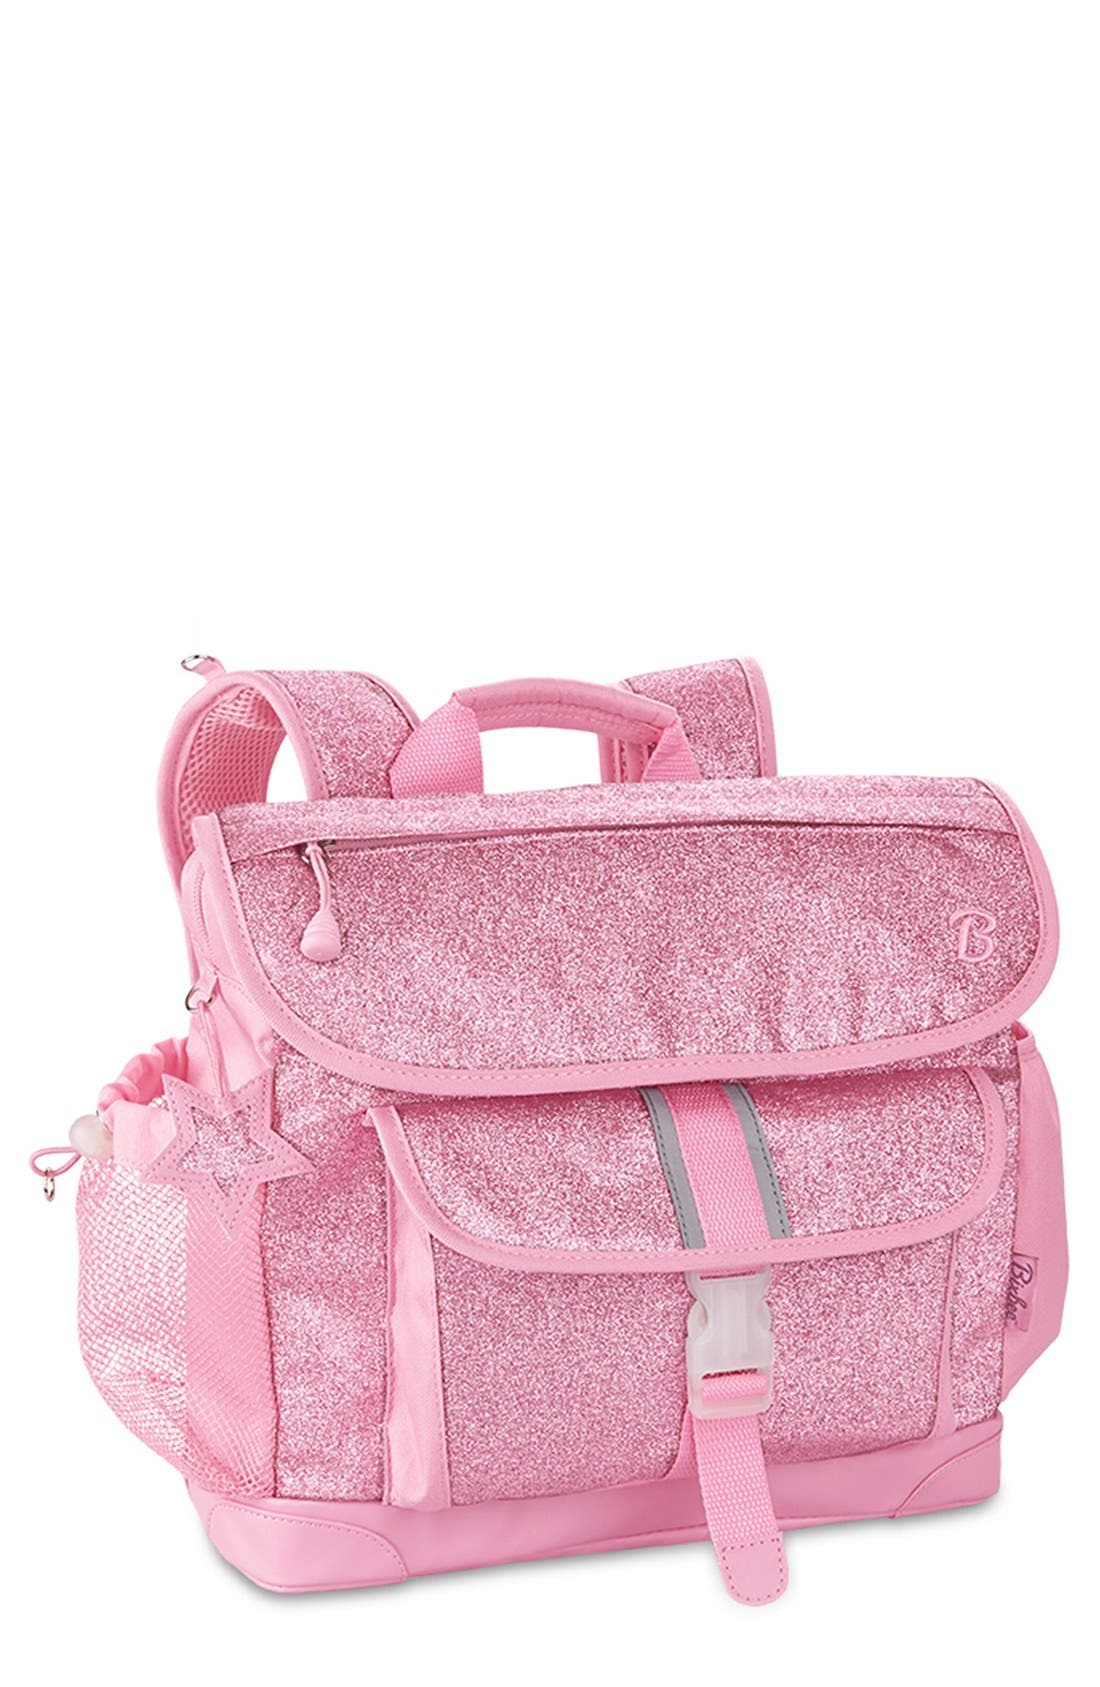 Alternate Image 1 Selected - Bixbee 'Large Sparkalicious' Backpack (Kids)